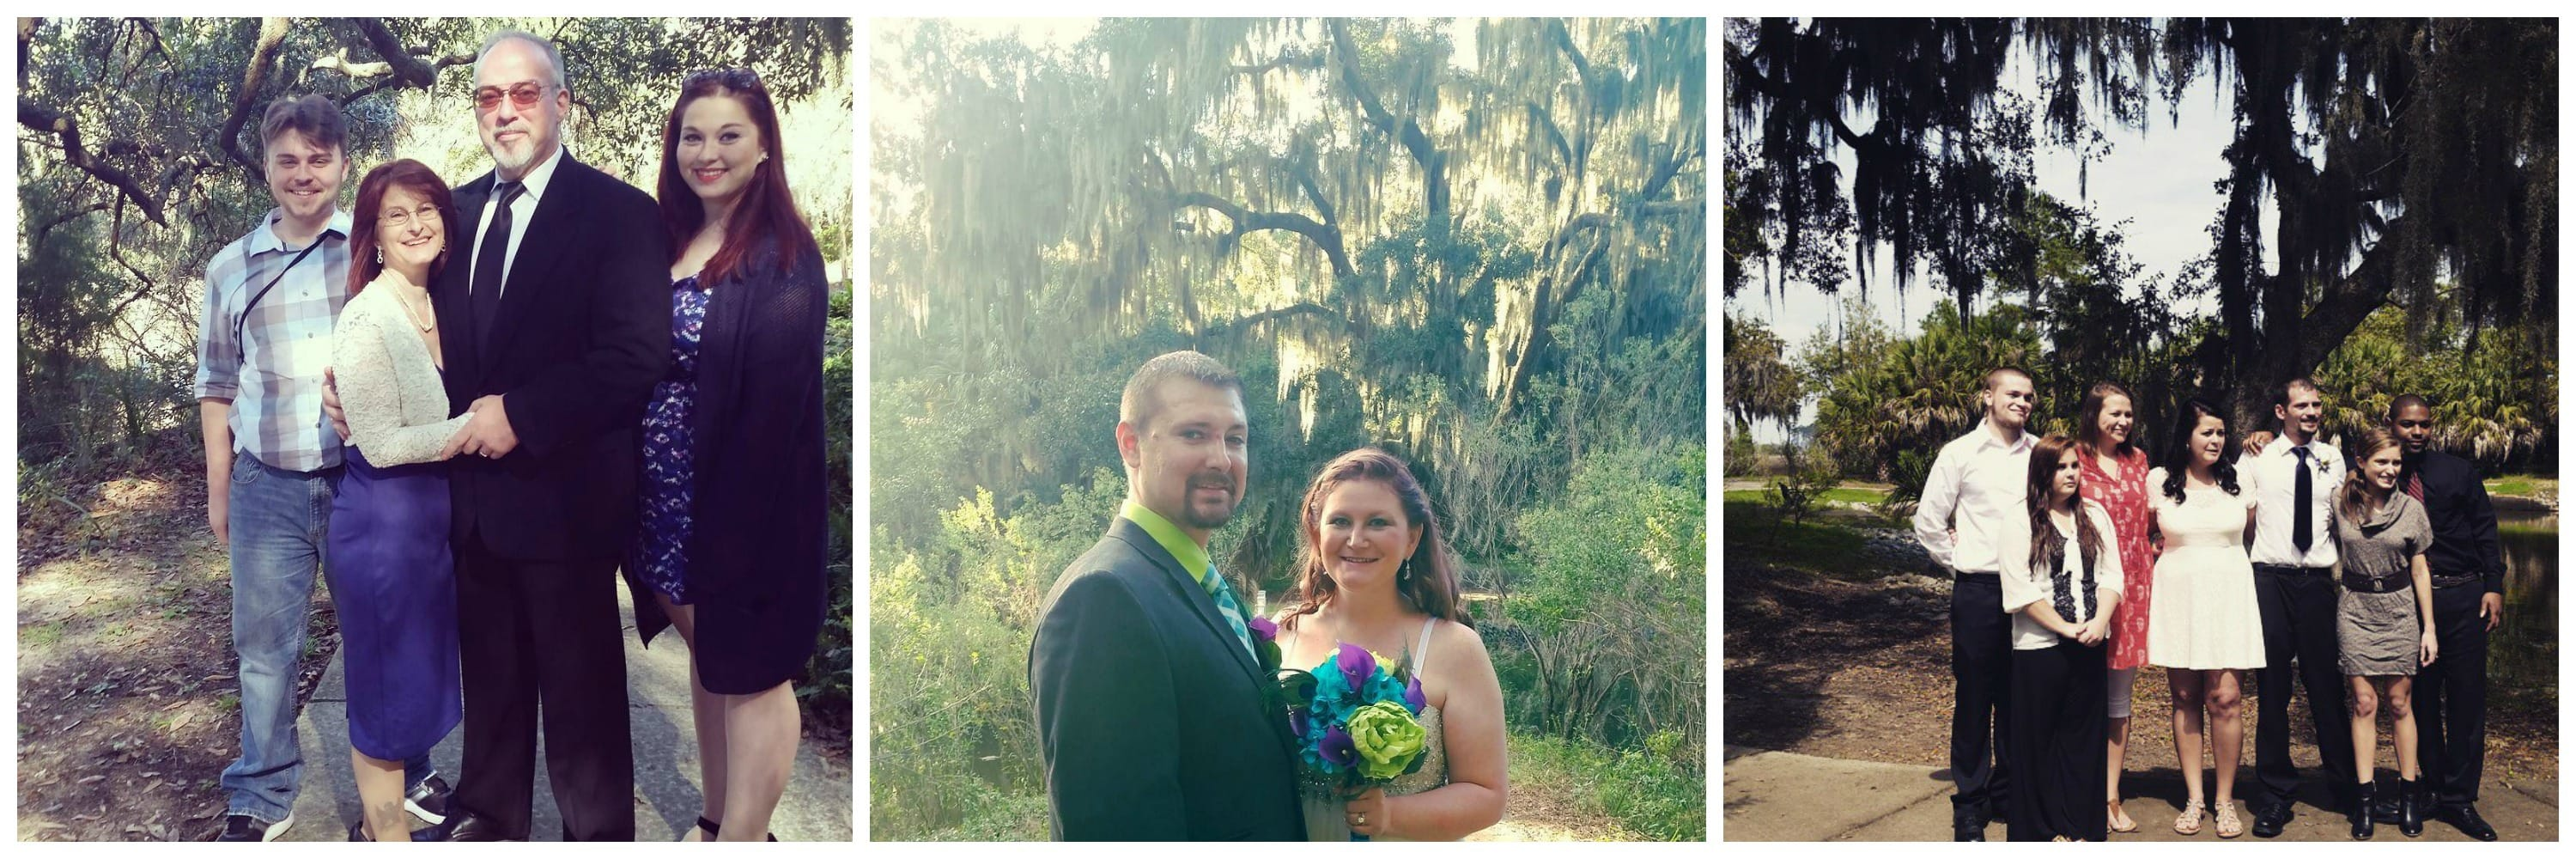 Wedding ceremonies at Greenwich Park, Savannah